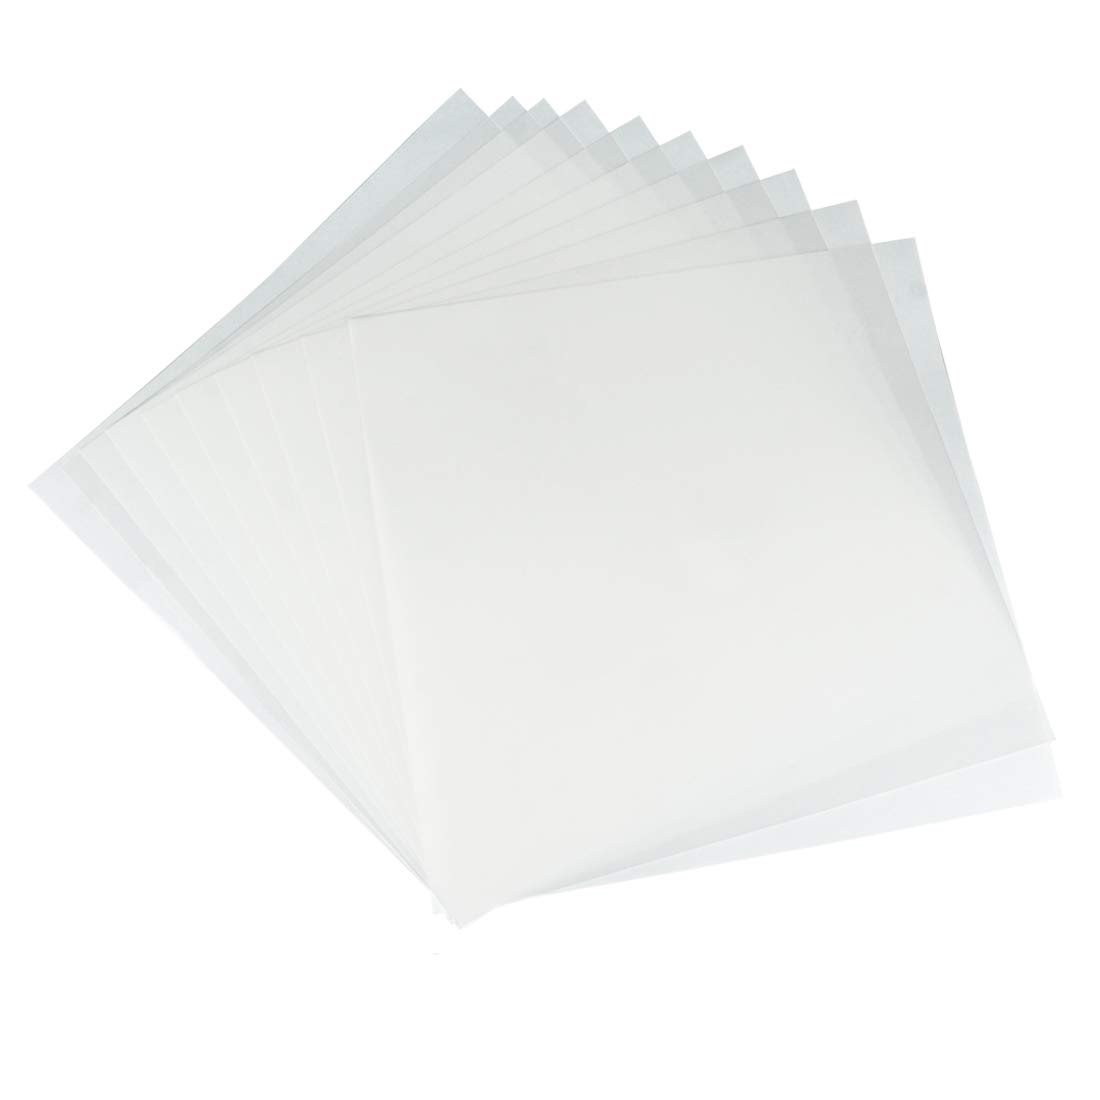 JINSEY Make Your Own Stencil - 10 Pack 6 Mil 12 x 12 inch Blank Stencil Sheets - Ideal Use Compatible Cricut & Silhouette Machines (Mylar Material) by JINSEY